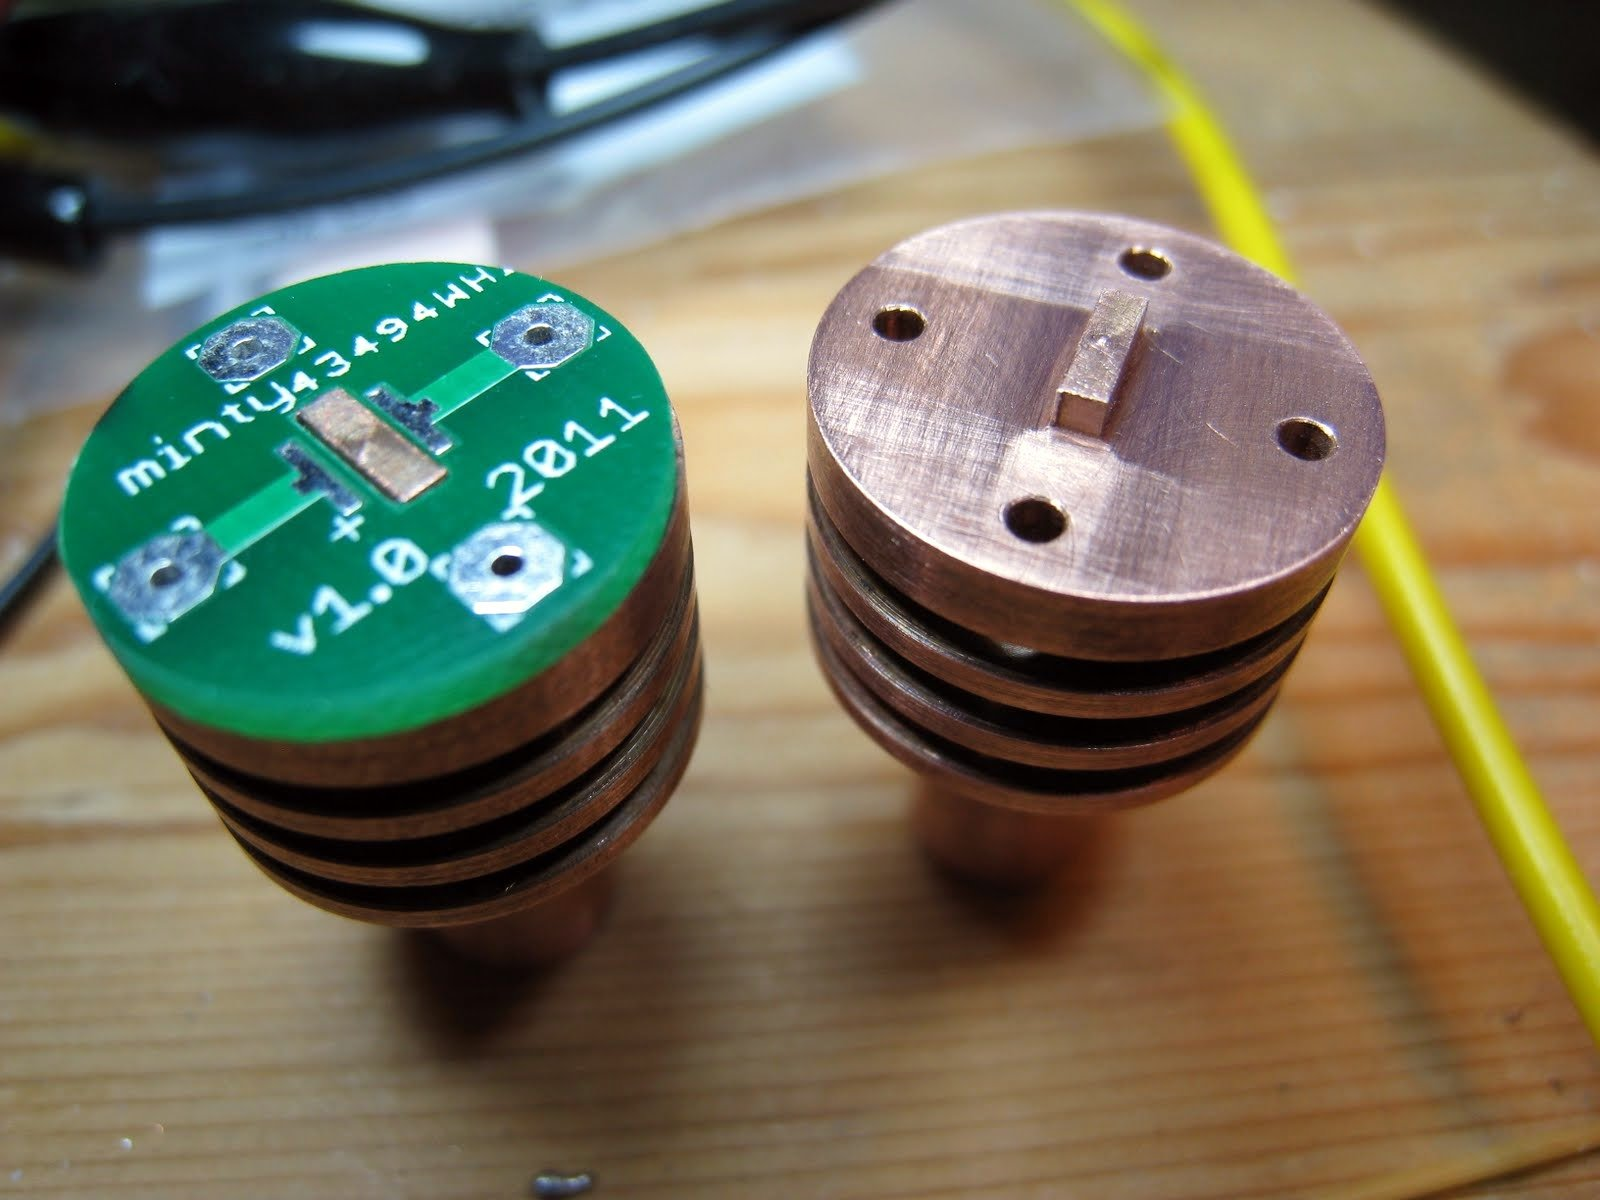 Bicycle Lighting Hot Led Lux Readings Of A Cree Xp G On Copper Fusion Pcb Service Upgraded With Even Lower Pricing Seeed Studio Nub Pokes Through Hole Milled In